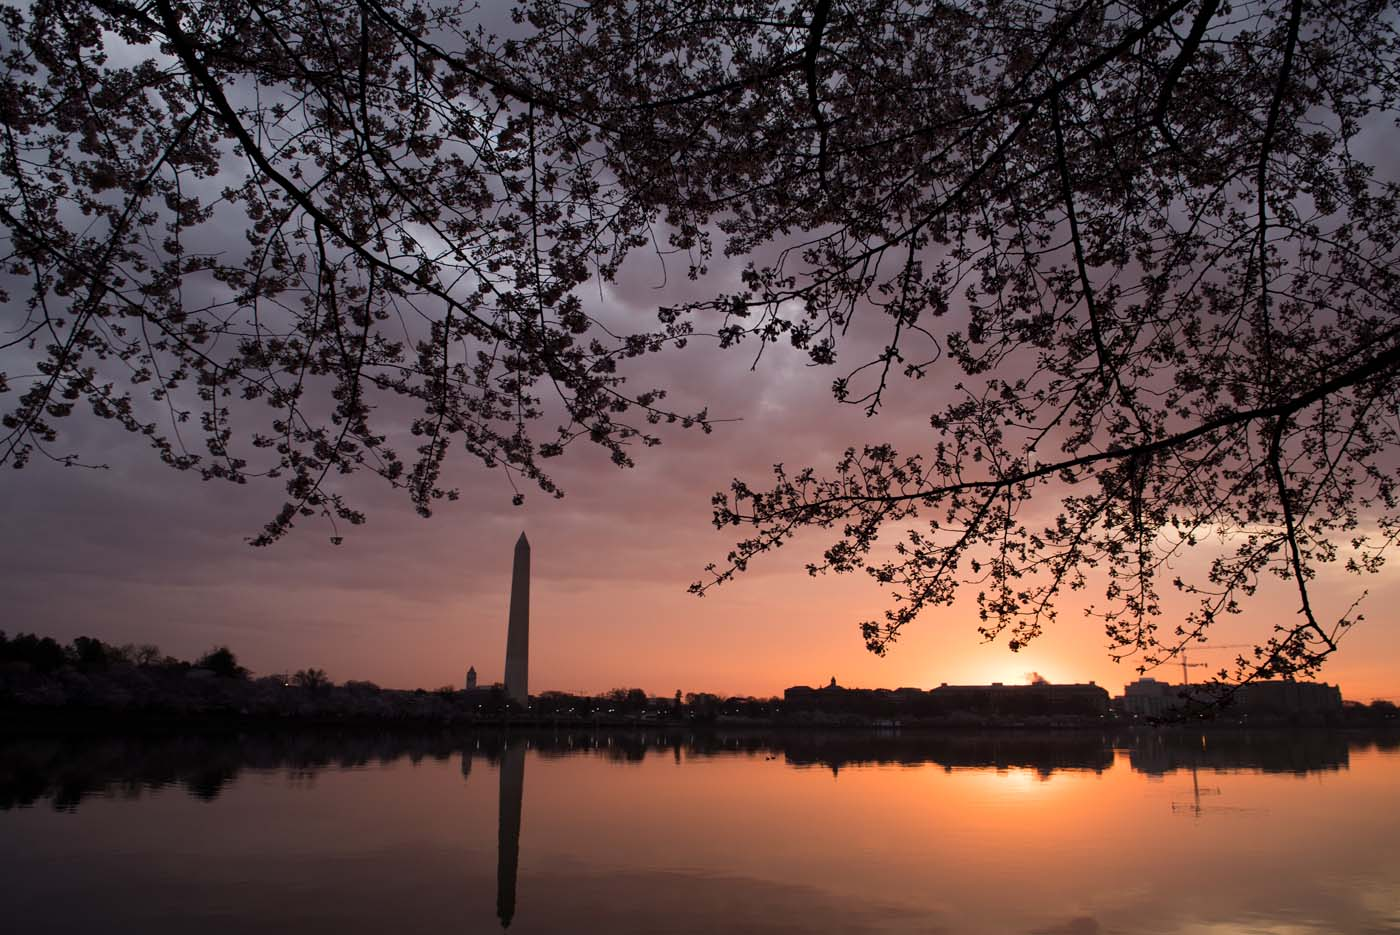 The Cherry Blossom trees bloom around the Tidal Basin at sunrise in Washington, DC, April 4, 2018. / AFP PHOTO / SAUL LOEB